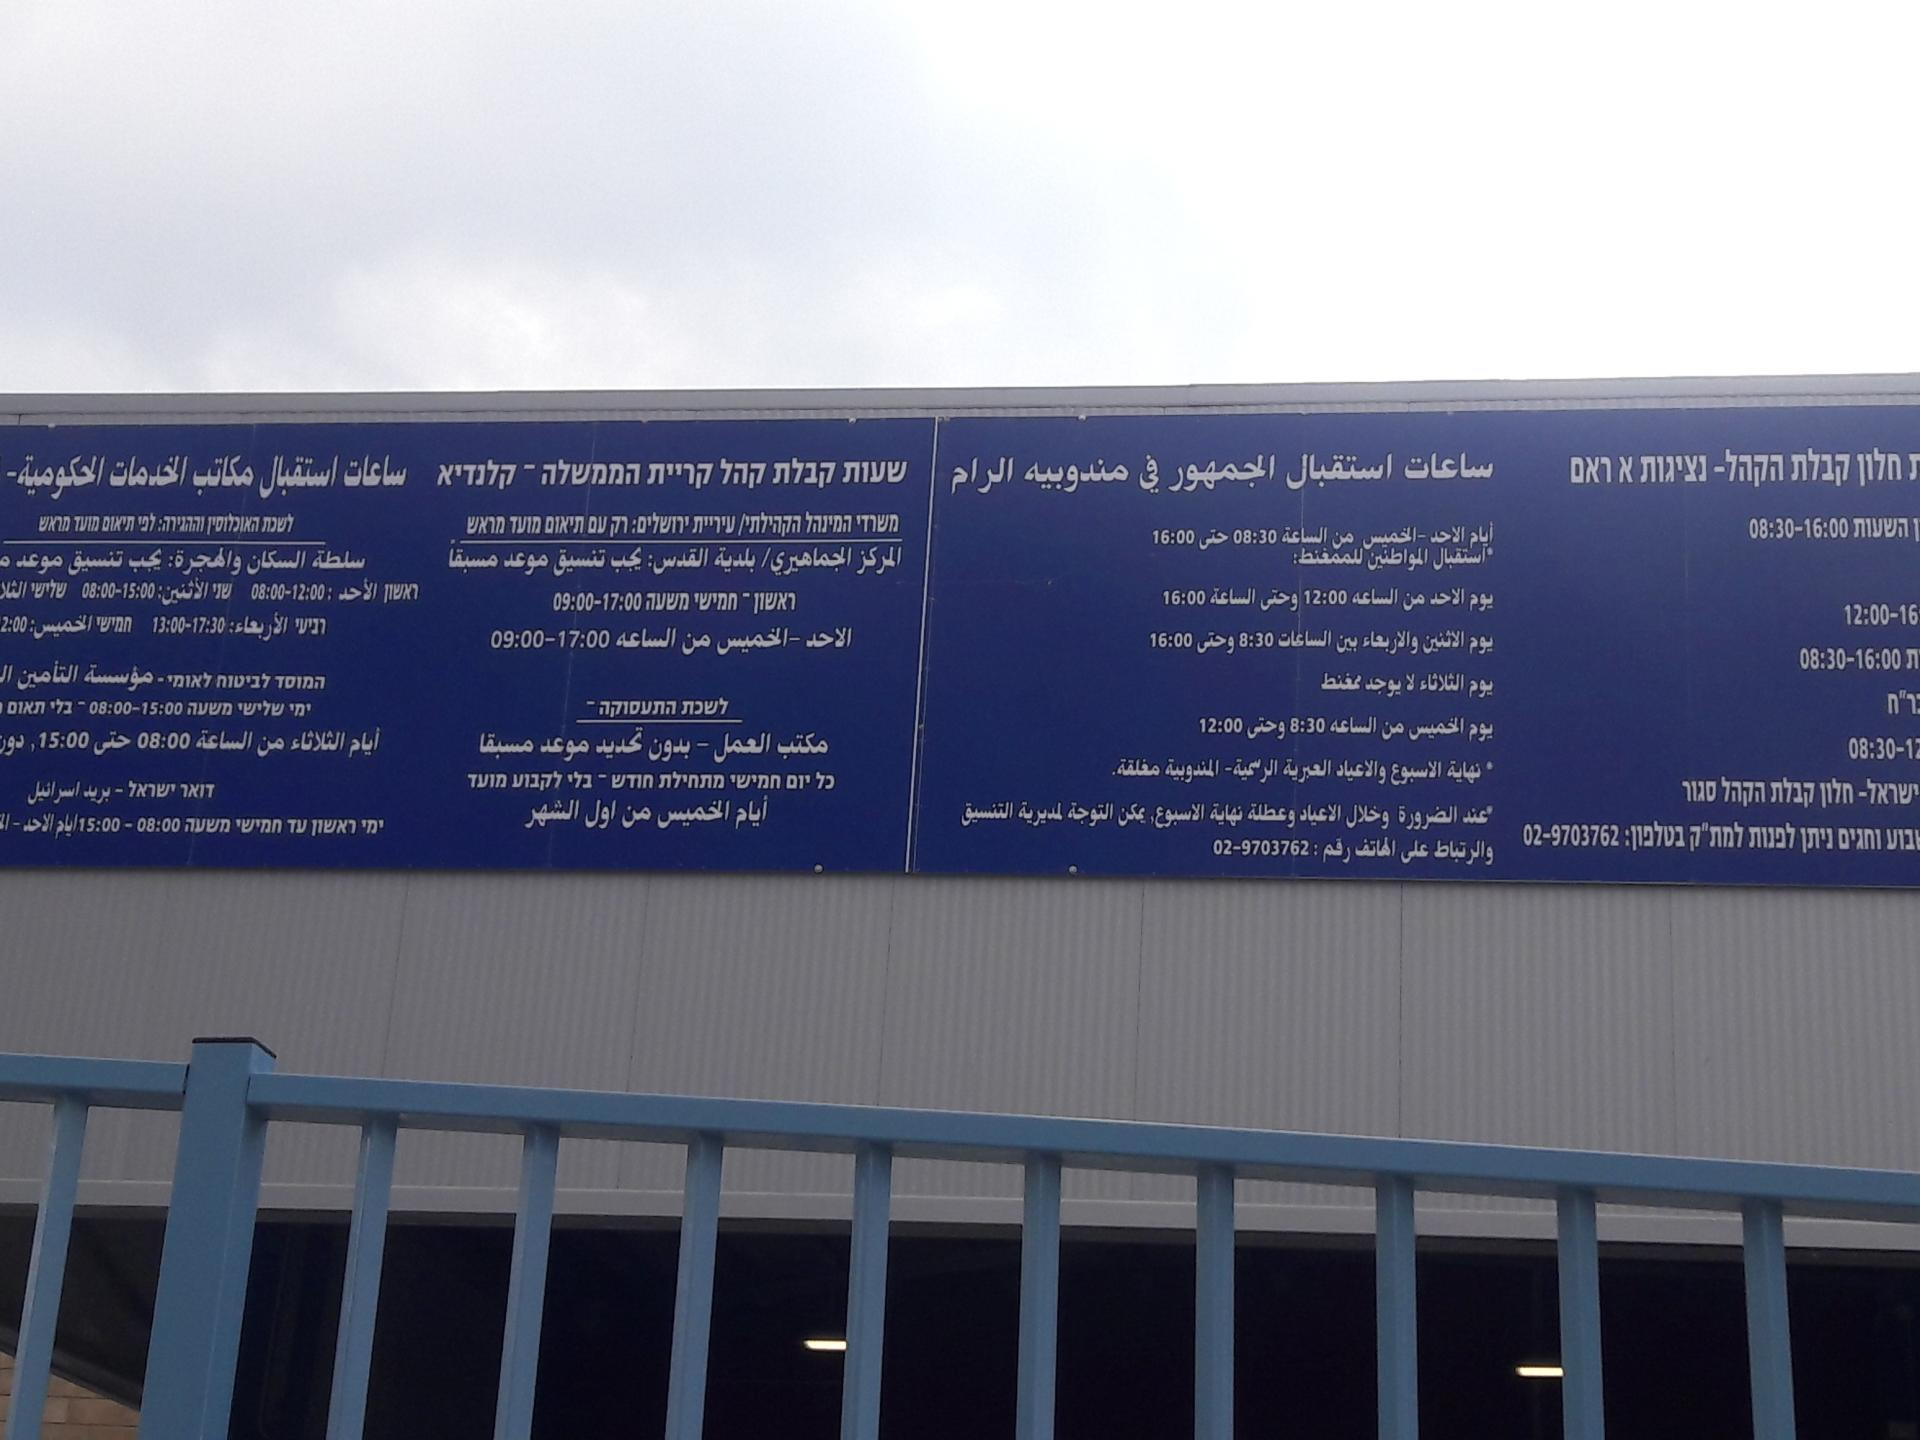 A sign directing to services provided near the new checkpoint